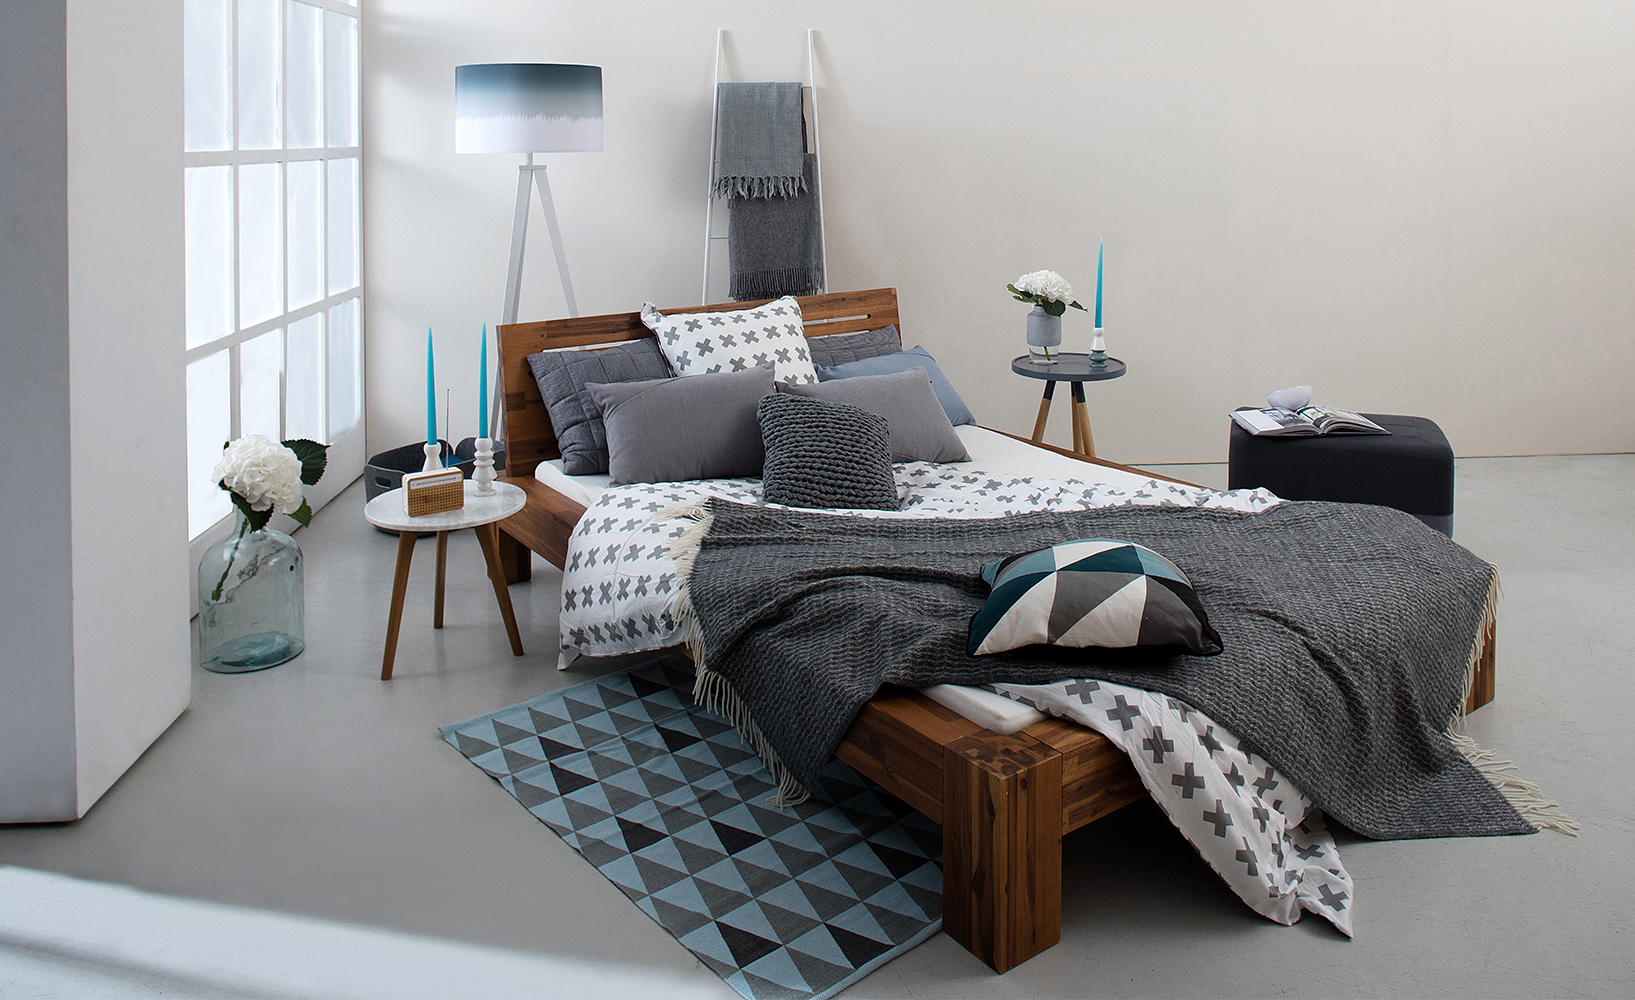 designtrends herbst winter 2015 amazon workshop. Black Bedroom Furniture Sets. Home Design Ideas